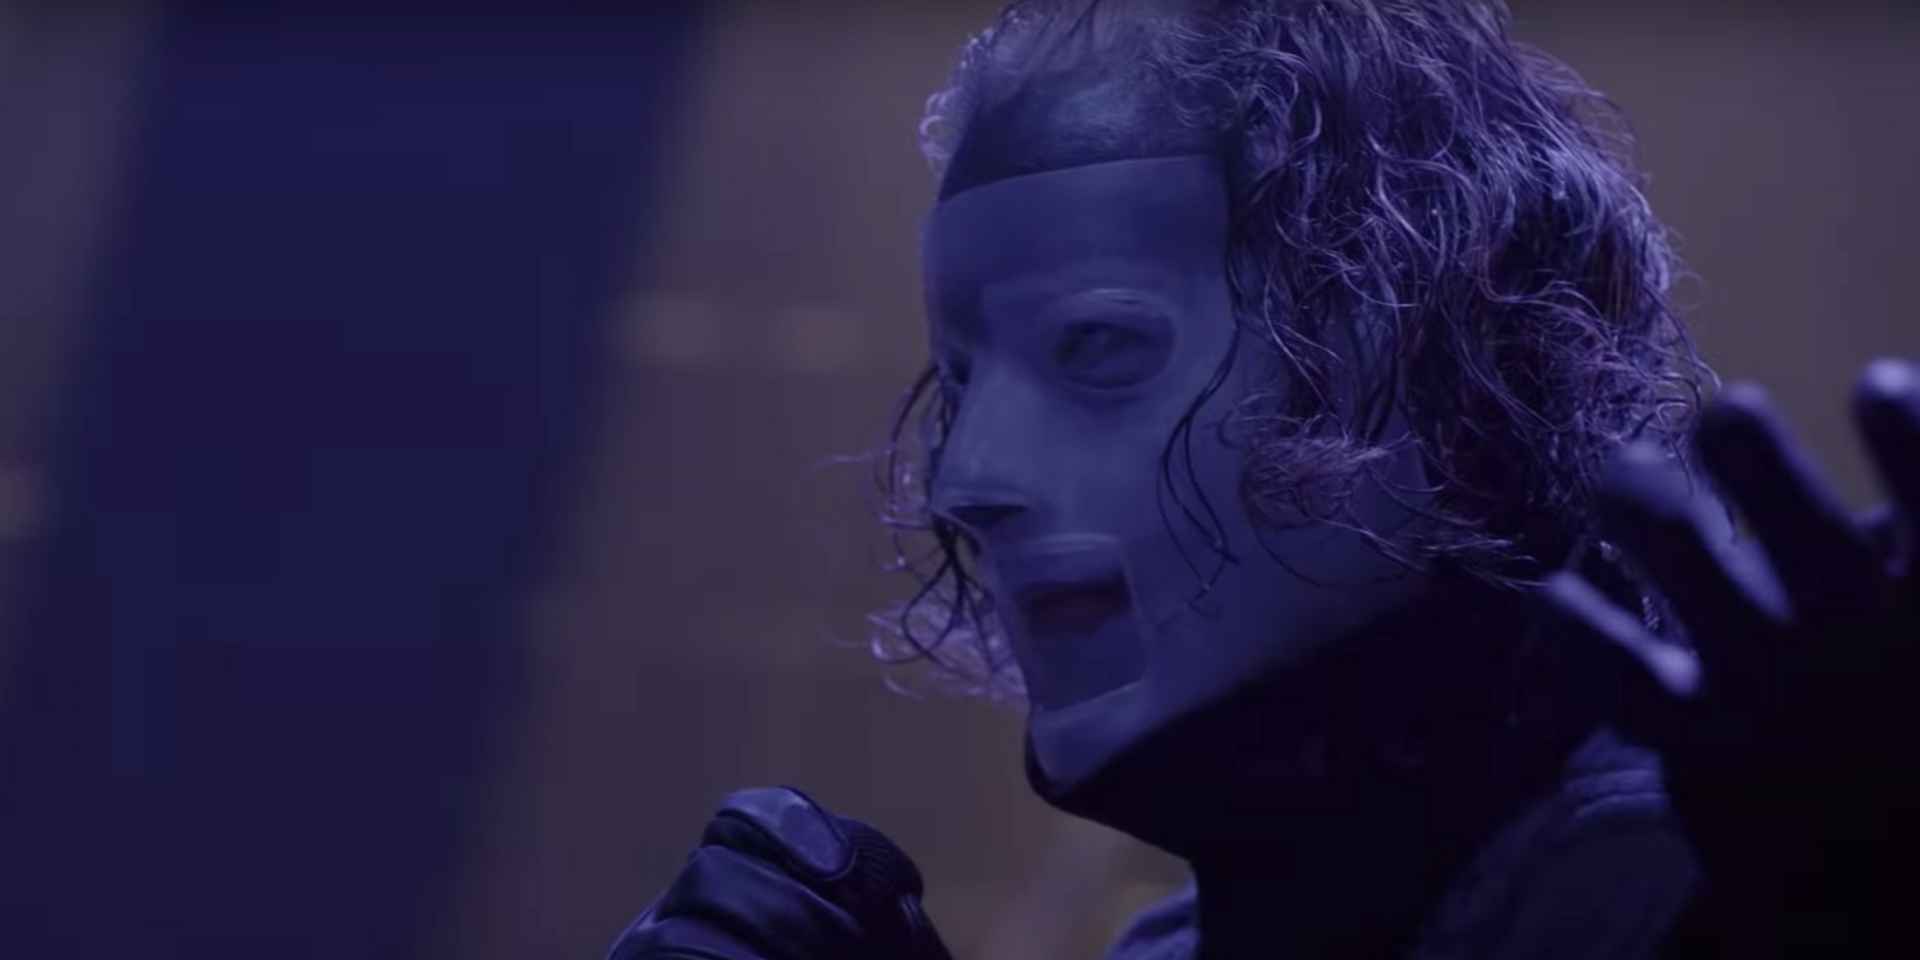 Slipknot releases new single, music video for 'Solway Firth' – watch